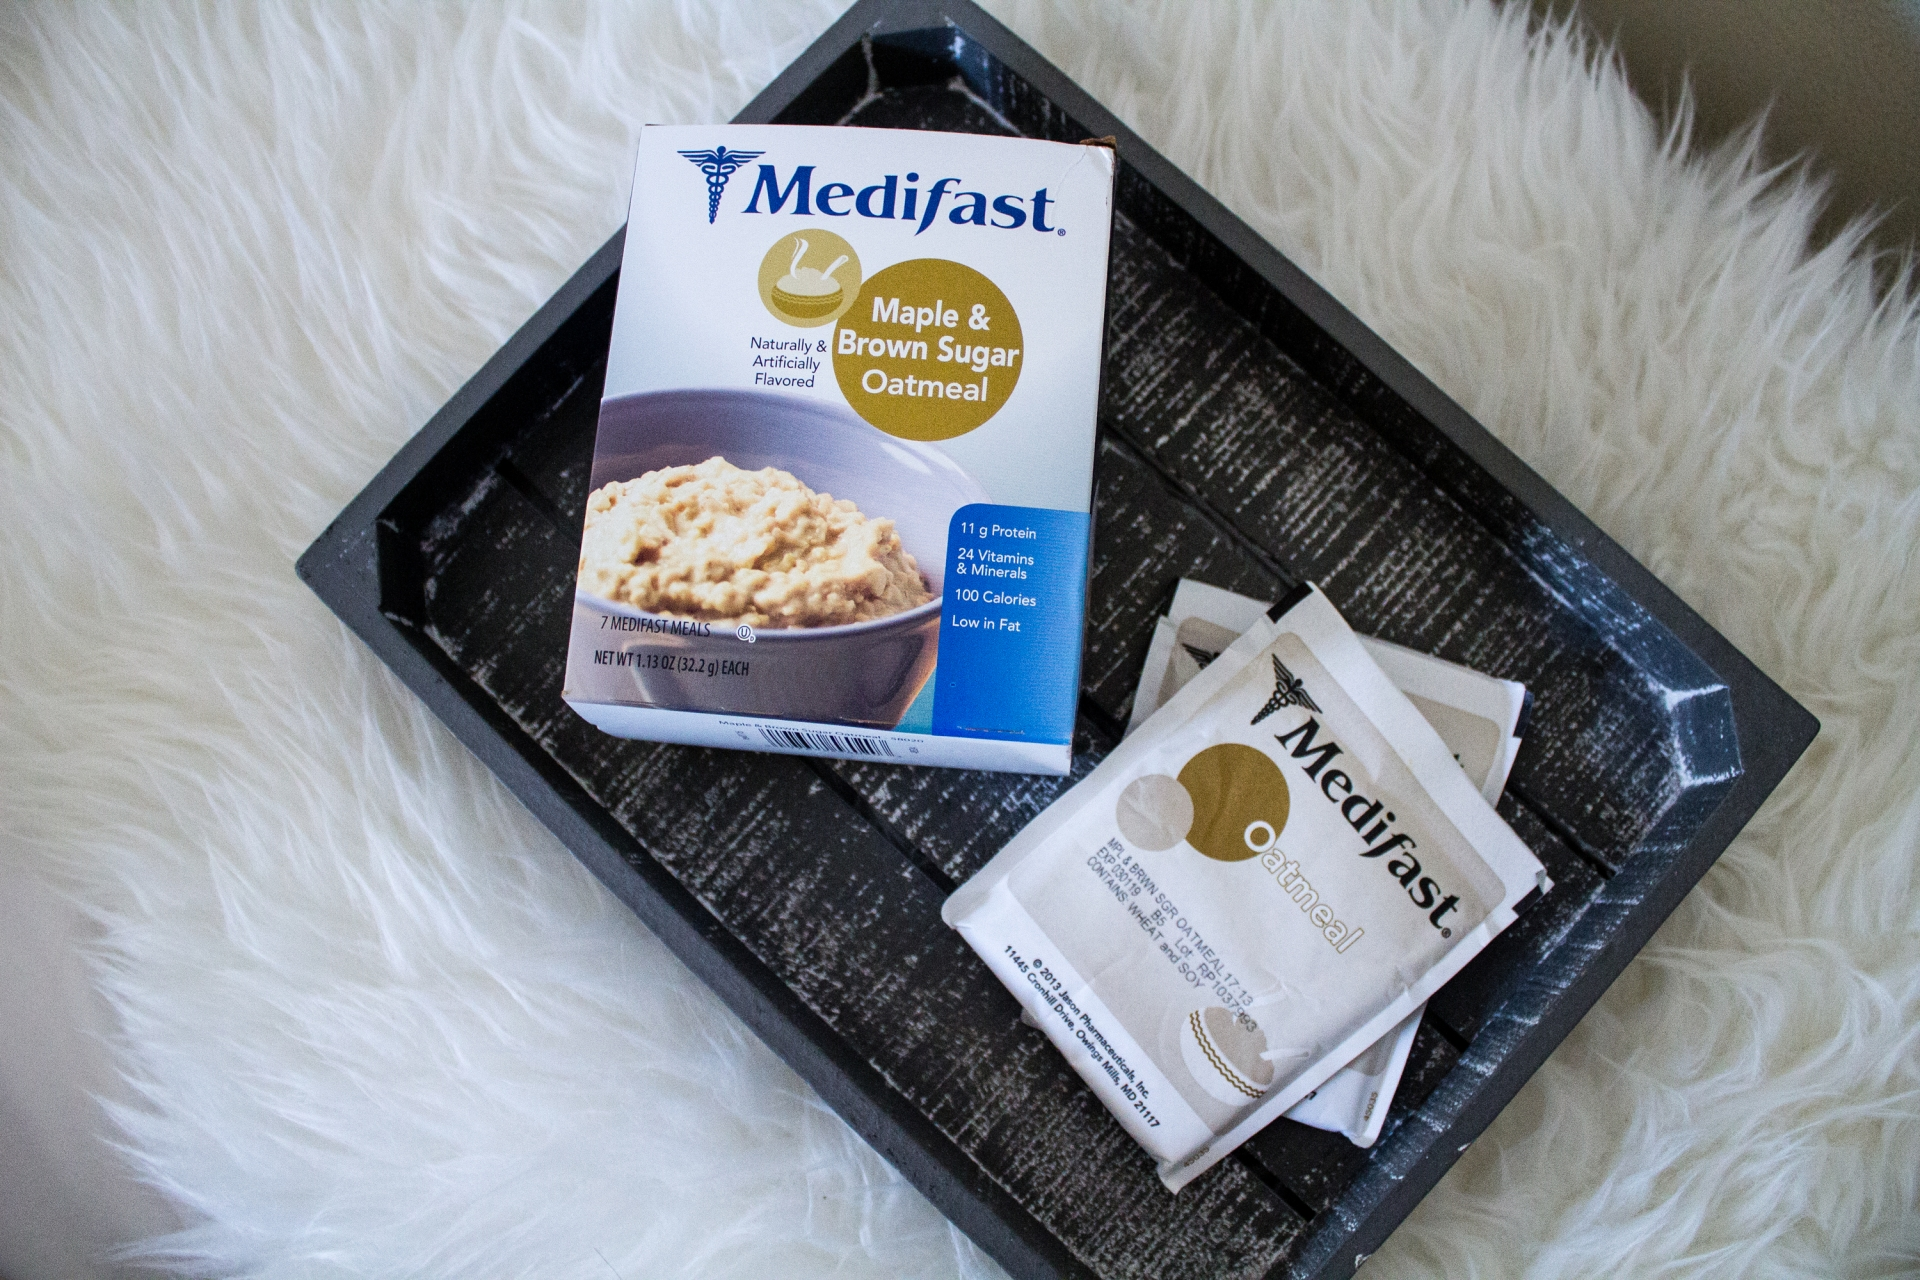 Medifast-Go-Breakfast-Collection-Maple-And-Brown-Sugar-Oatmeals